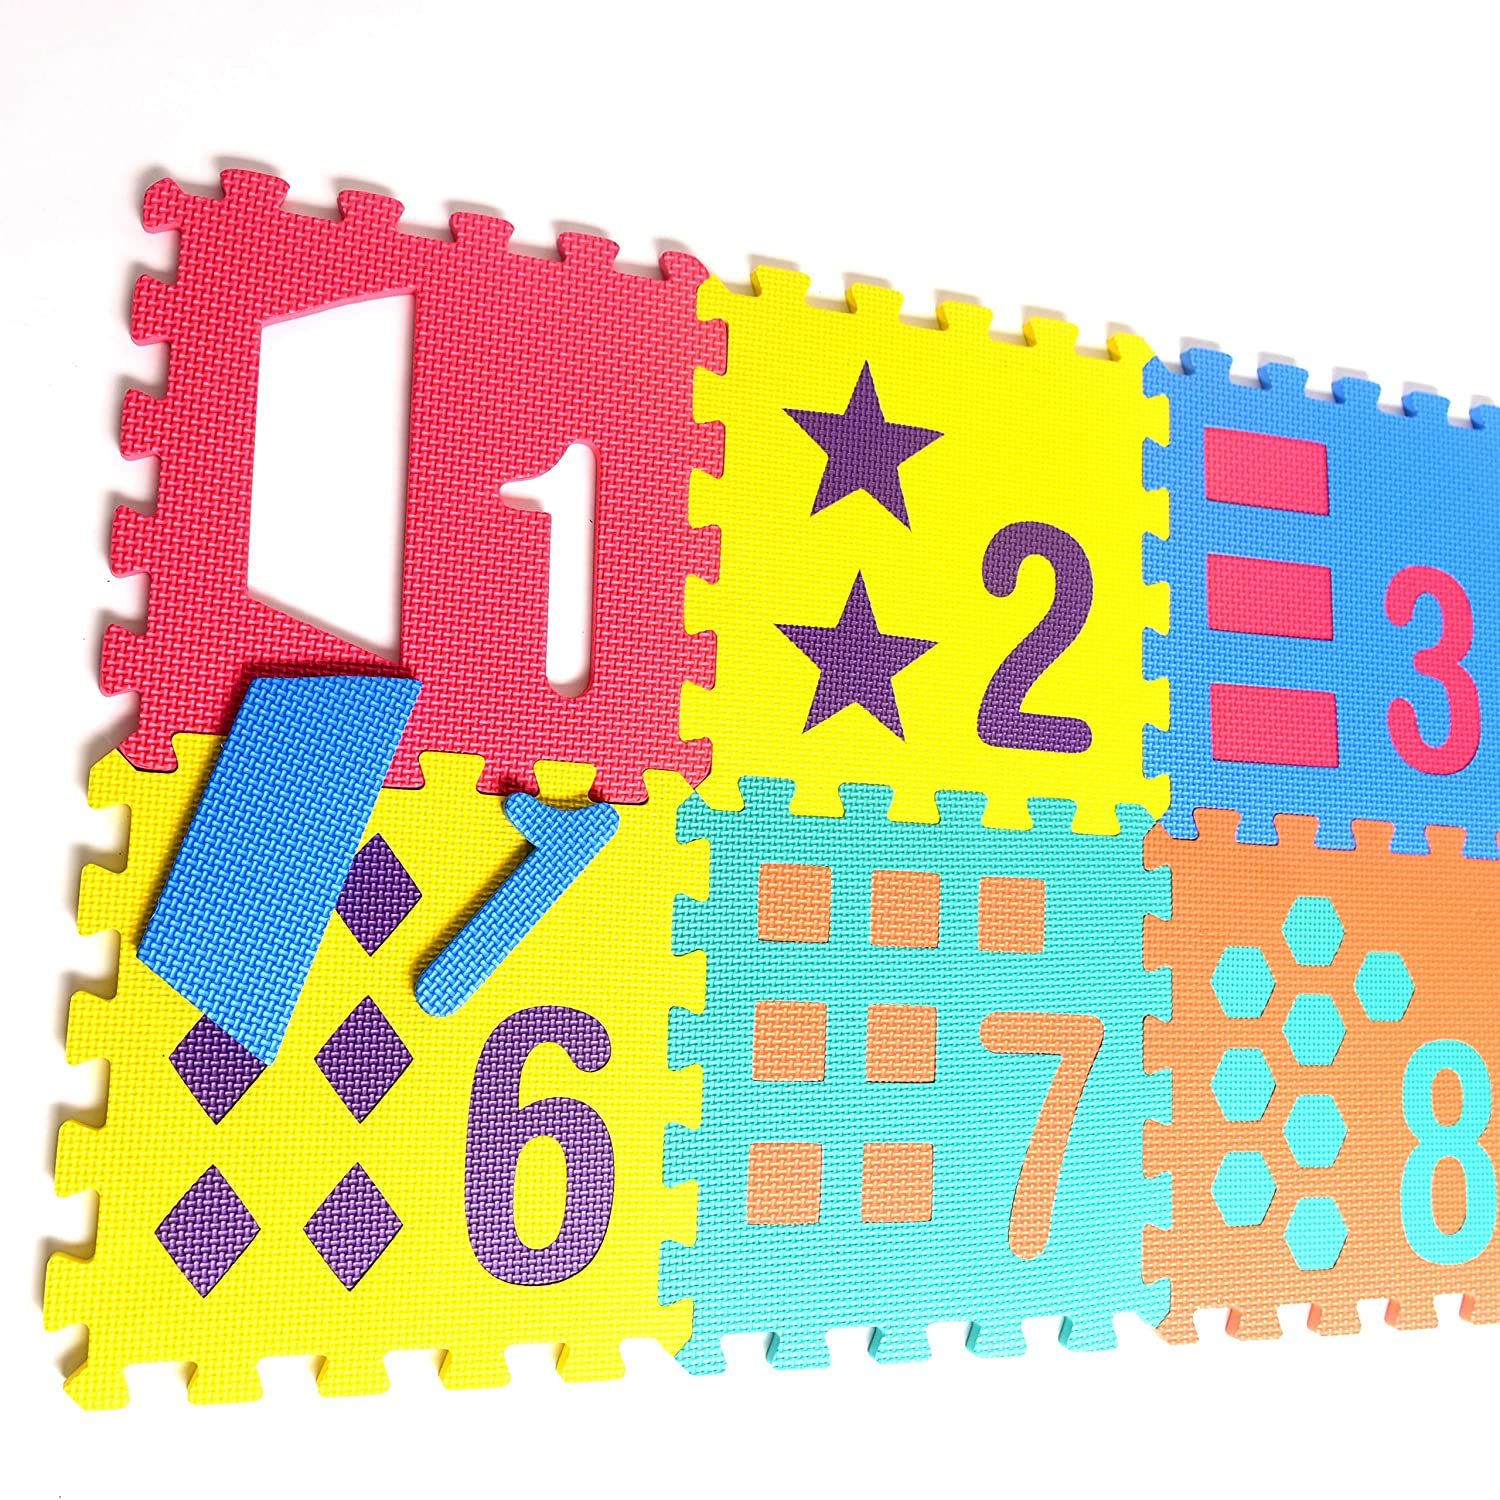 Numbers Shapes Rubber EVA Foam Puzzle Play Mat Floor. 10 Interlocking playmat Tiles Tile 12X12 Inch 36 Sq.Feet Coverage . Ideal Crawling Baby Infant Classroom Toddlers Kids Gym Workout